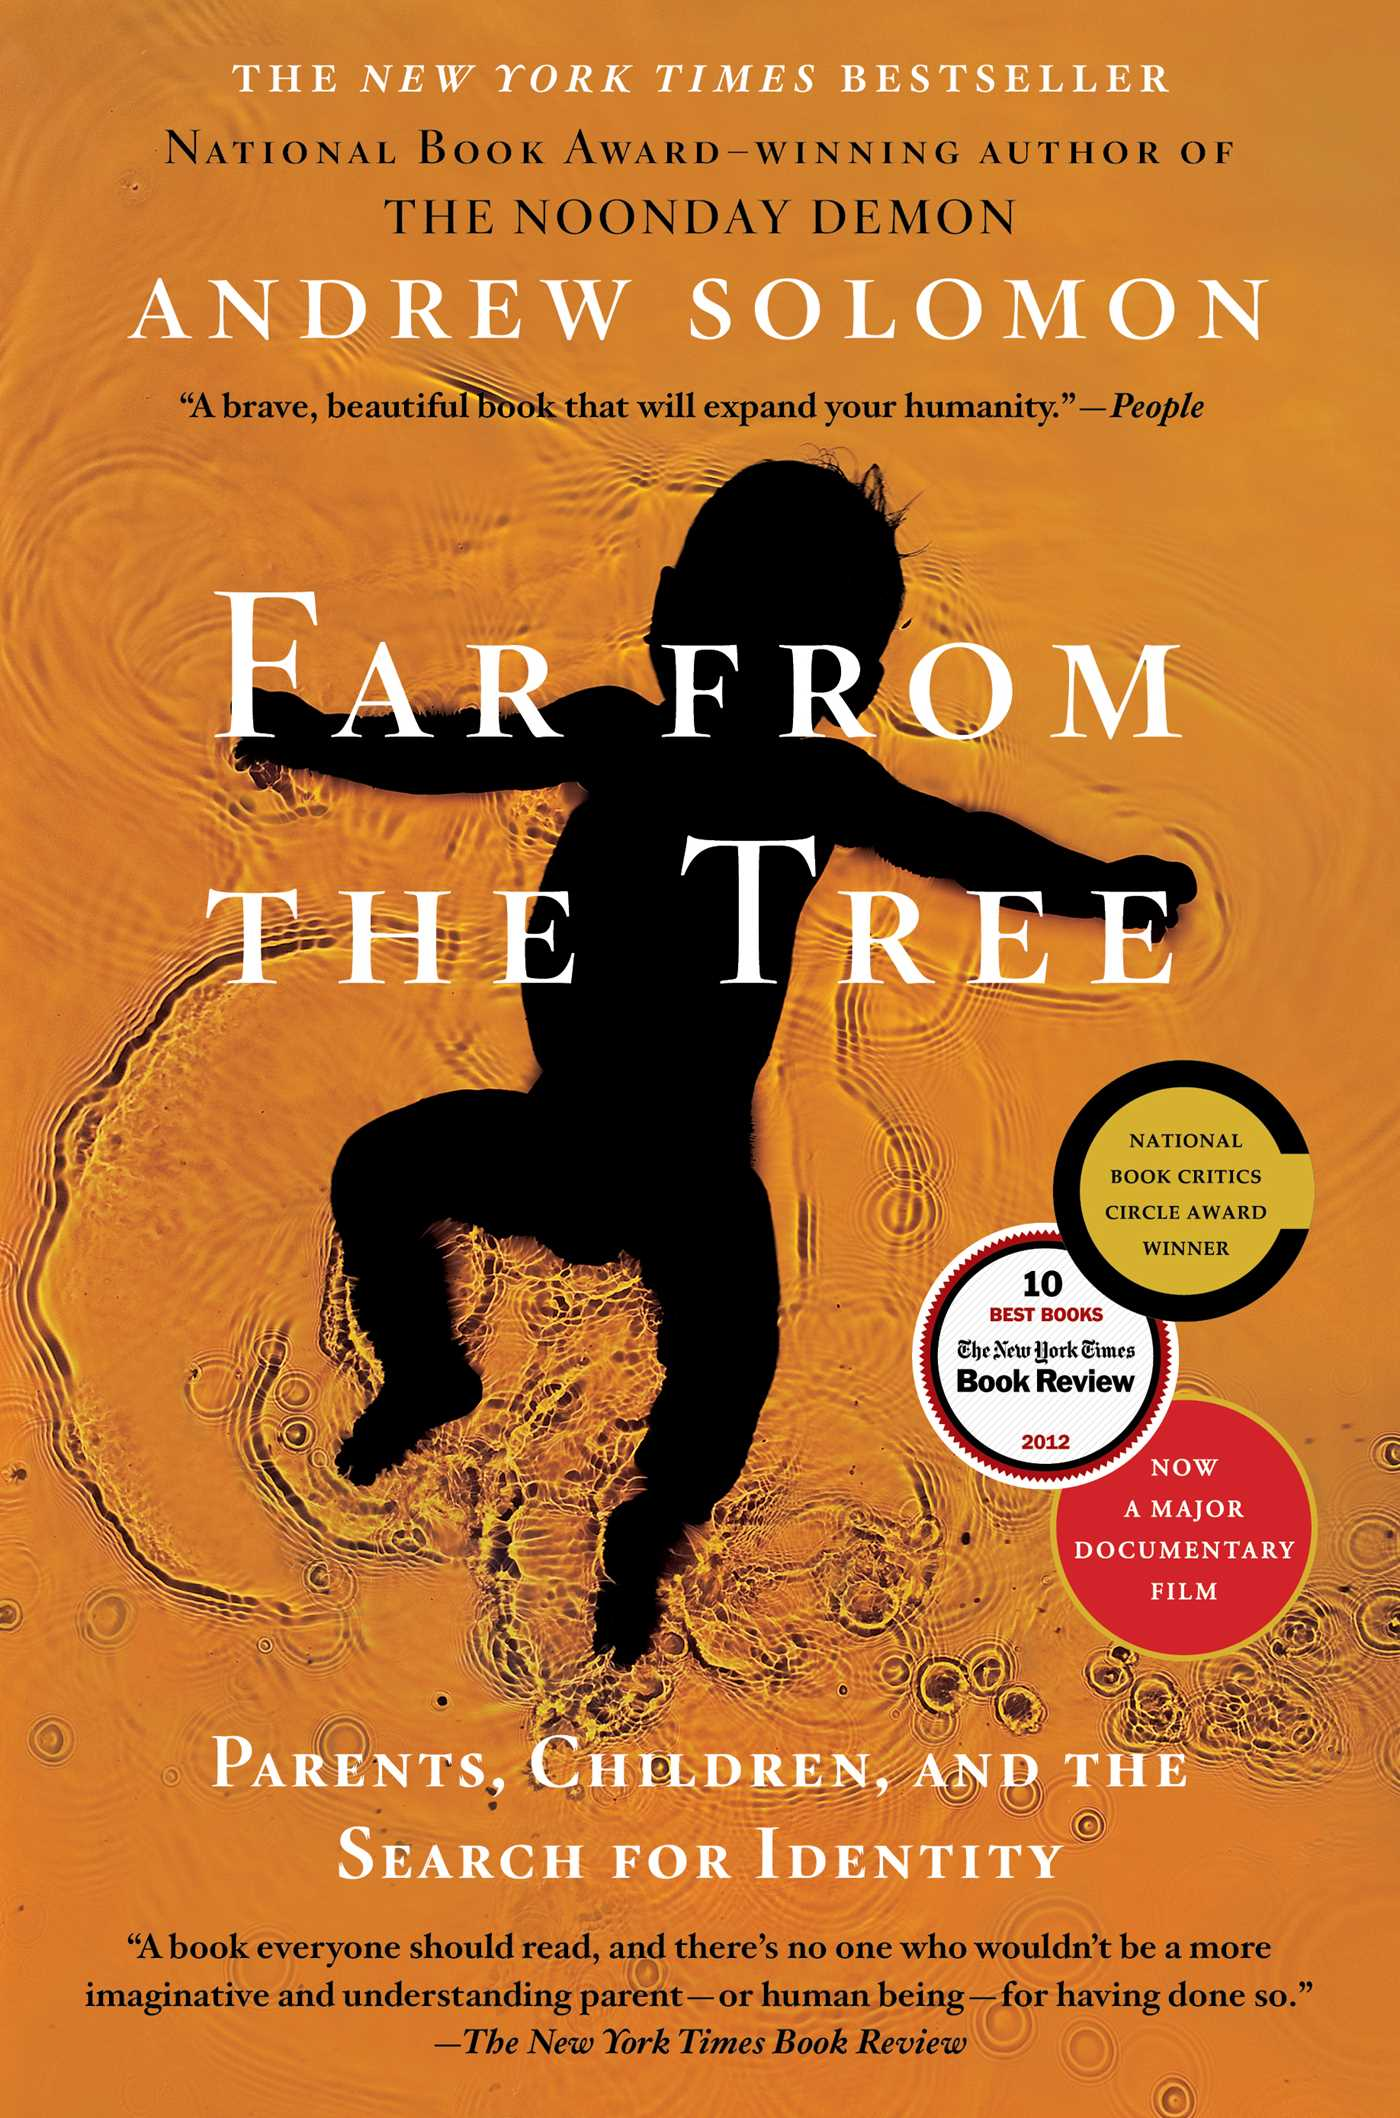 Far from the tree 9780743236720 hr